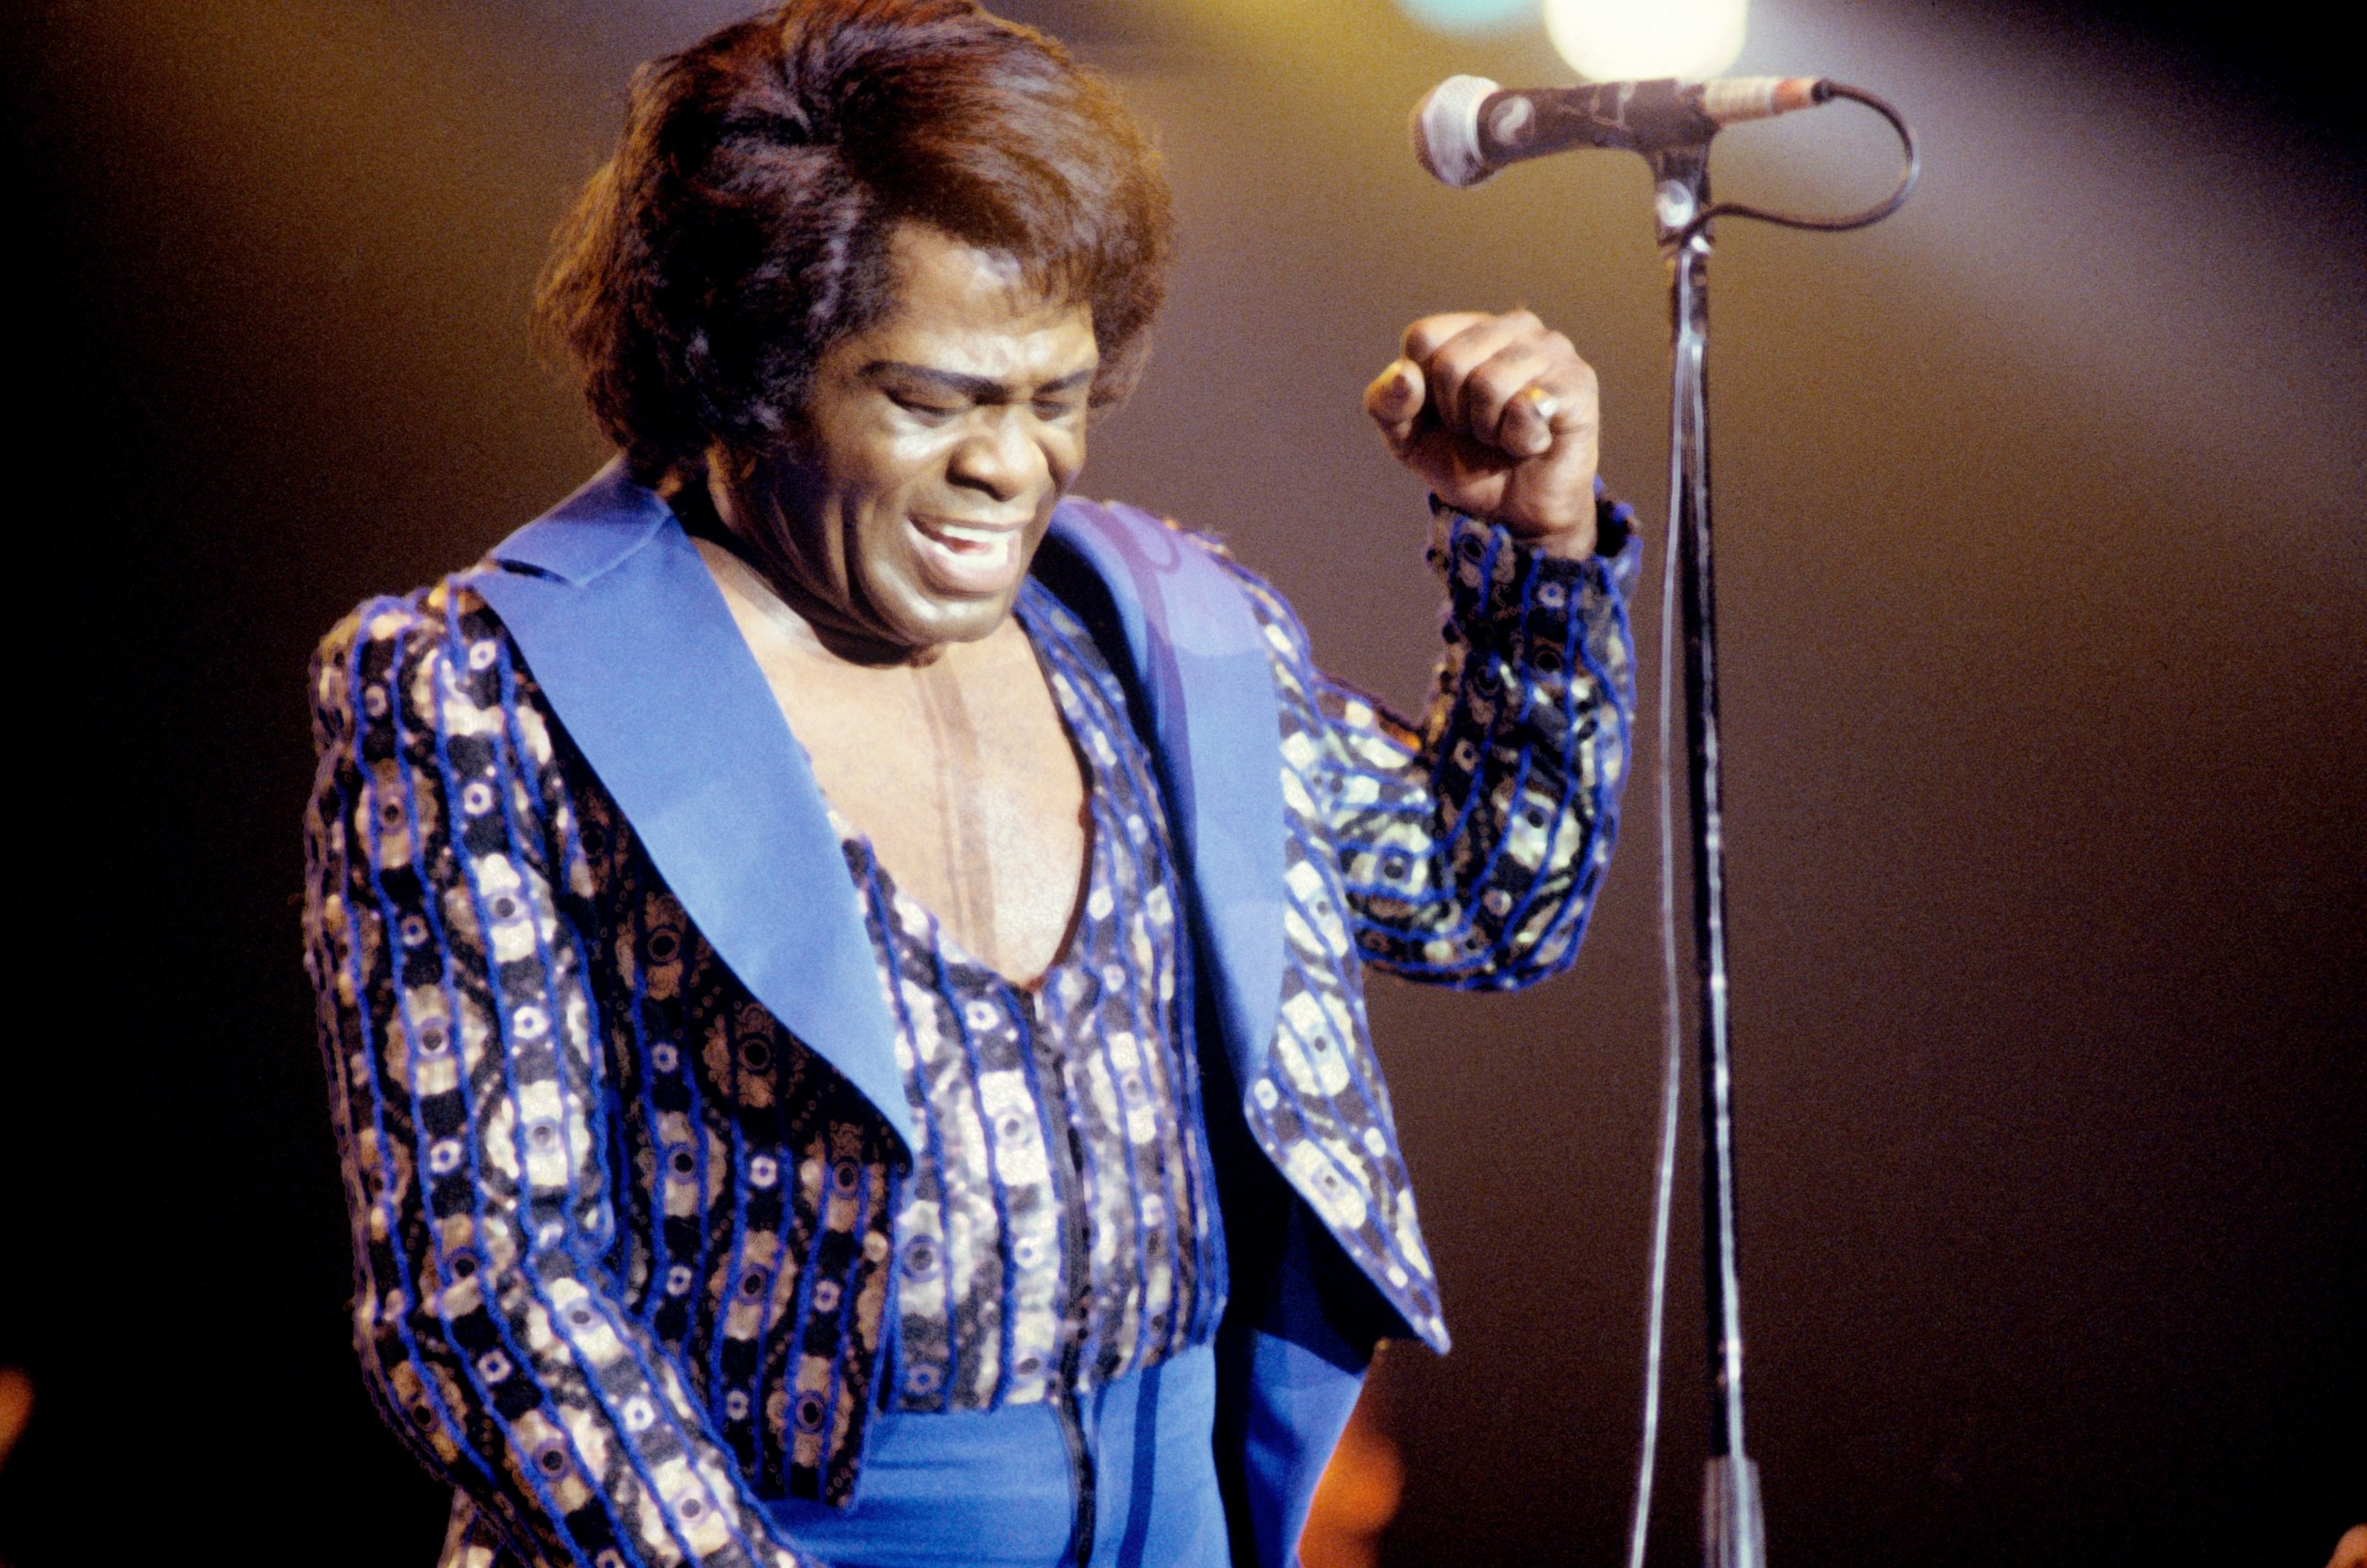 james brown i feel good скачатьjames brown - i feel good, james brown mp3, james brown get up, james brown слушать, james brown i feel good скачать, james brown i got you, james brown payback, james brown is dead, james brown this is a man's world, james brown фильм, james brown - i feel good lyrics, james brown the boss перевод, james brown man's world перевод, james brown boss, james brown please please please, james brown try me, james brown the boss скачать, james brown dance, james brown discography, james brown this is a man's world mp3